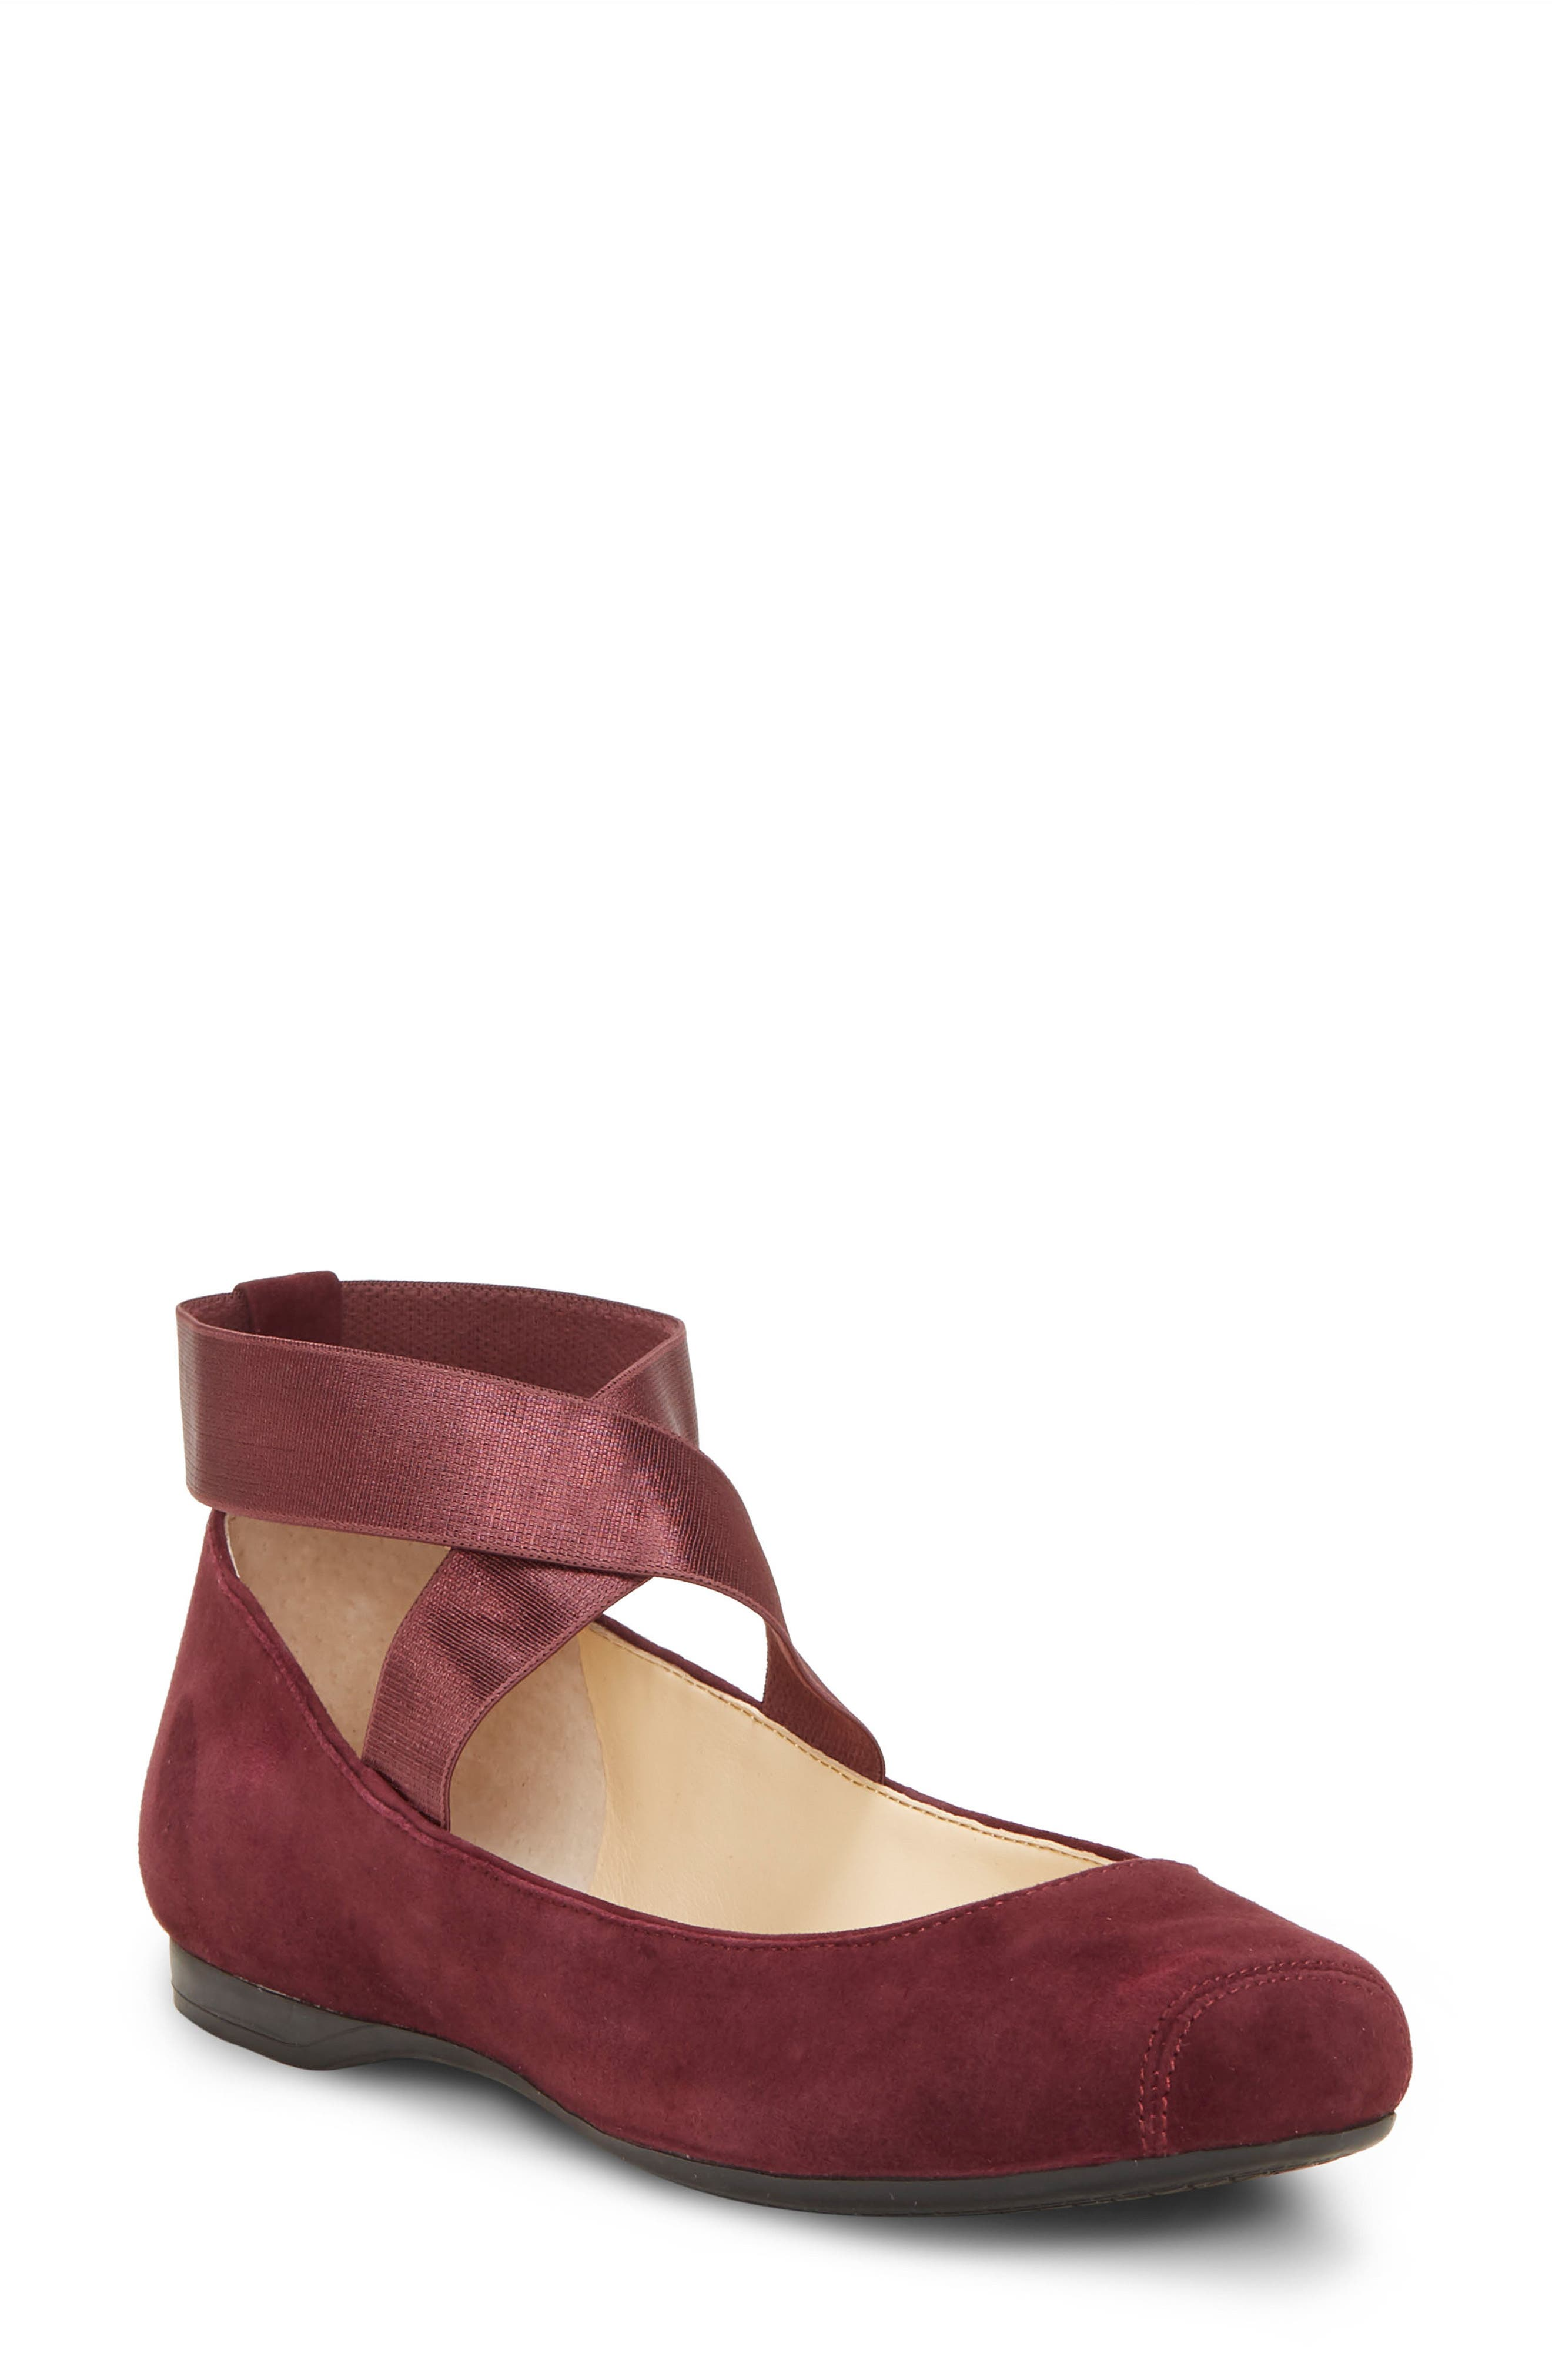 'Mandalaye' Leather Flat,                             Main thumbnail 1, color,                             SHIRAZ